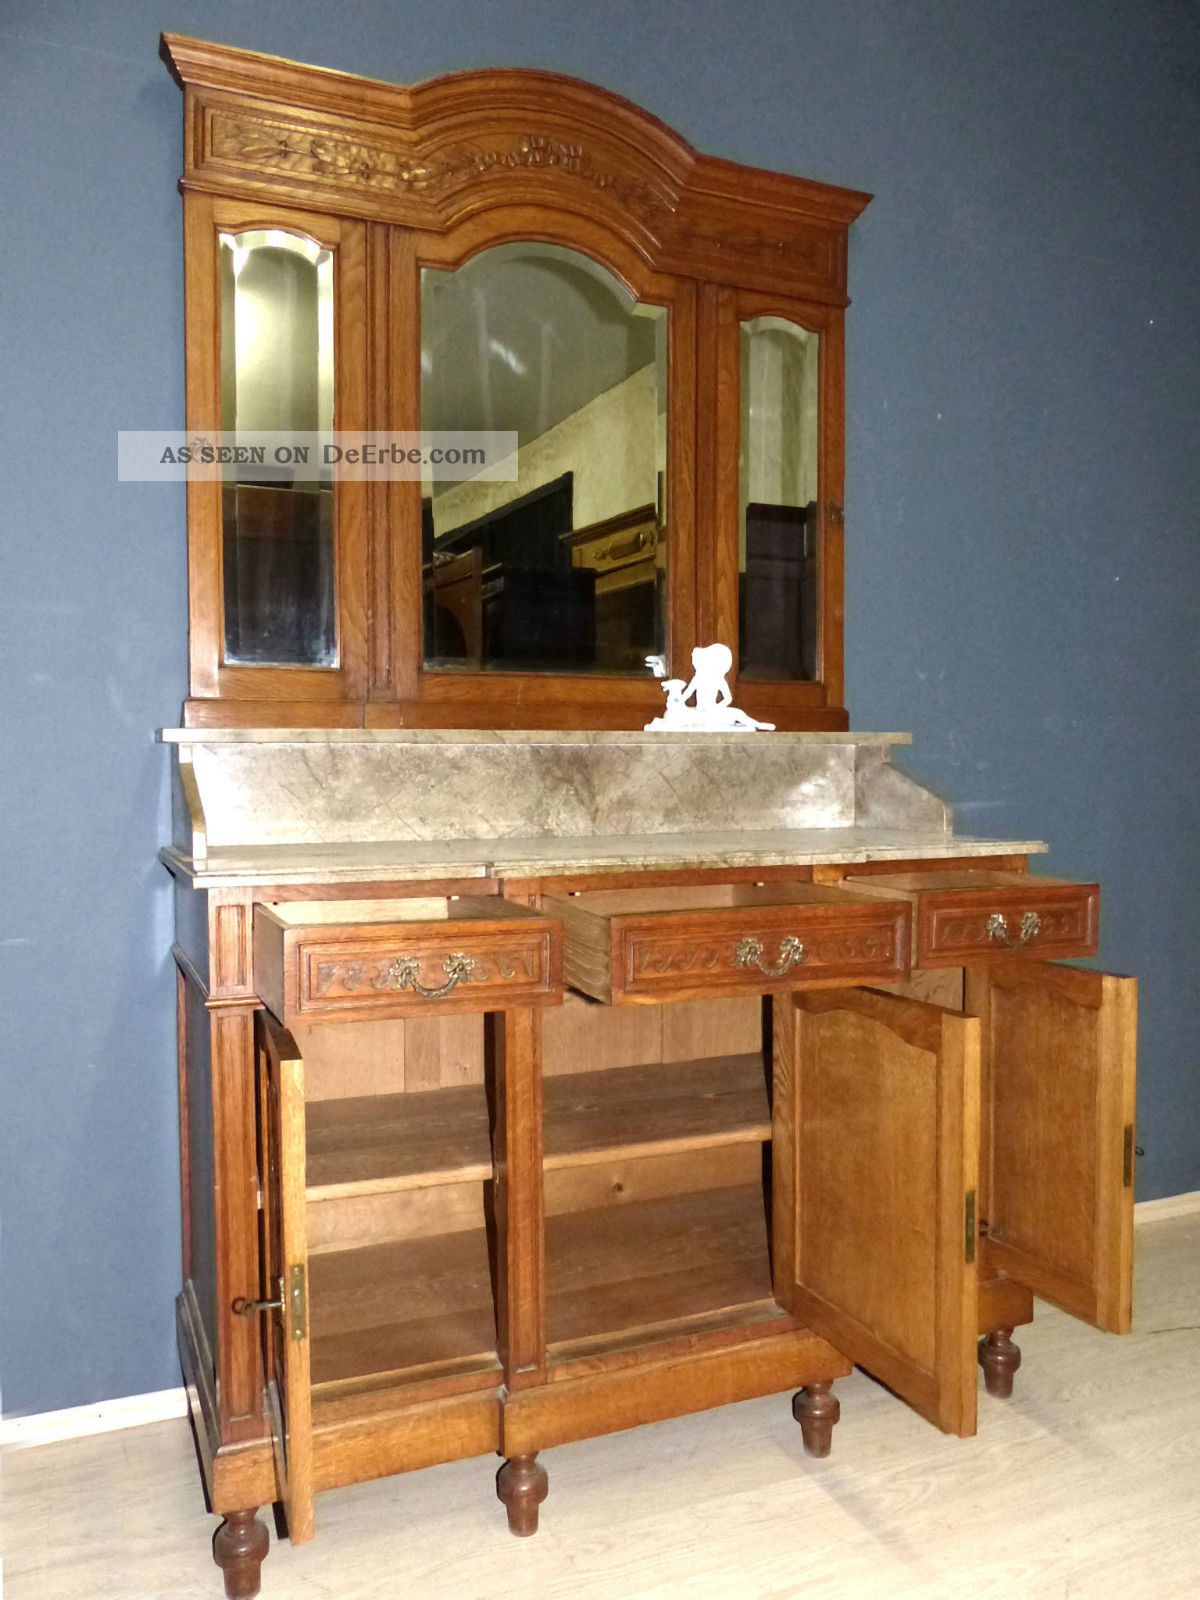 xl jugendstil spiegelkommode wien kommode spiegel antik. Black Bedroom Furniture Sets. Home Design Ideas